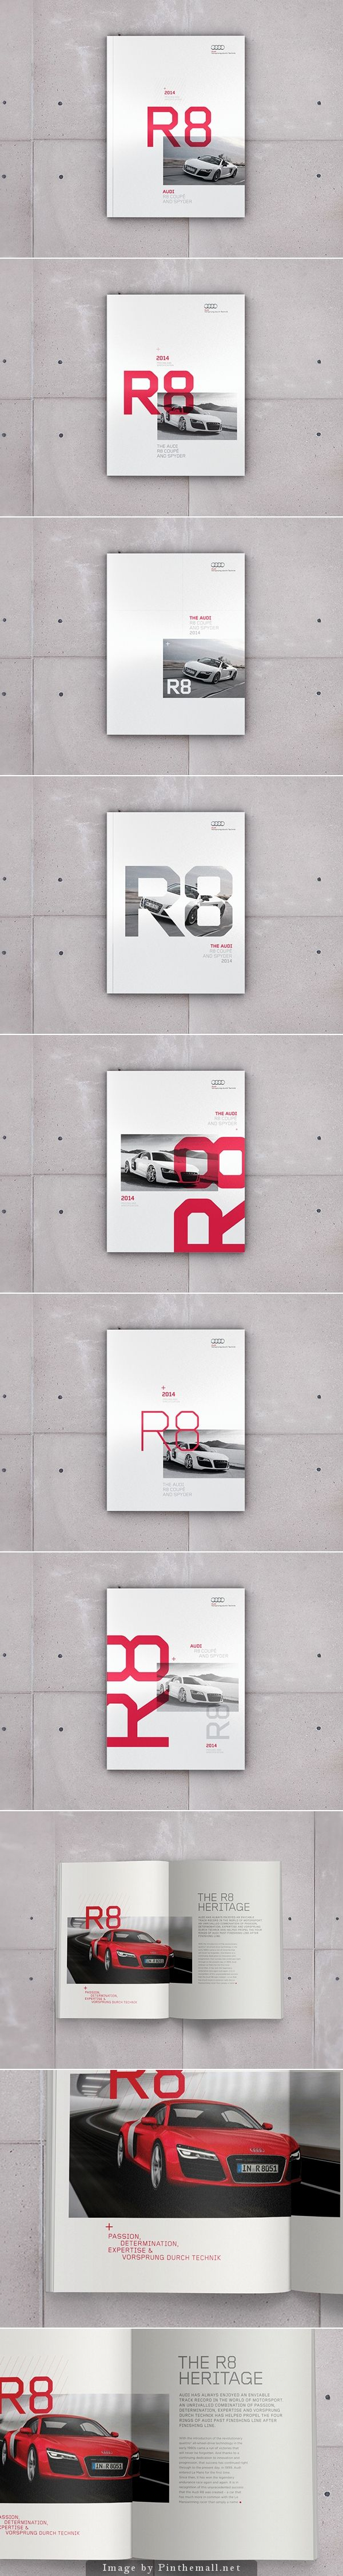 Audi R8 Brochure Editorial Design, Graphic Design, Print Design Project By Jonathan Quintin